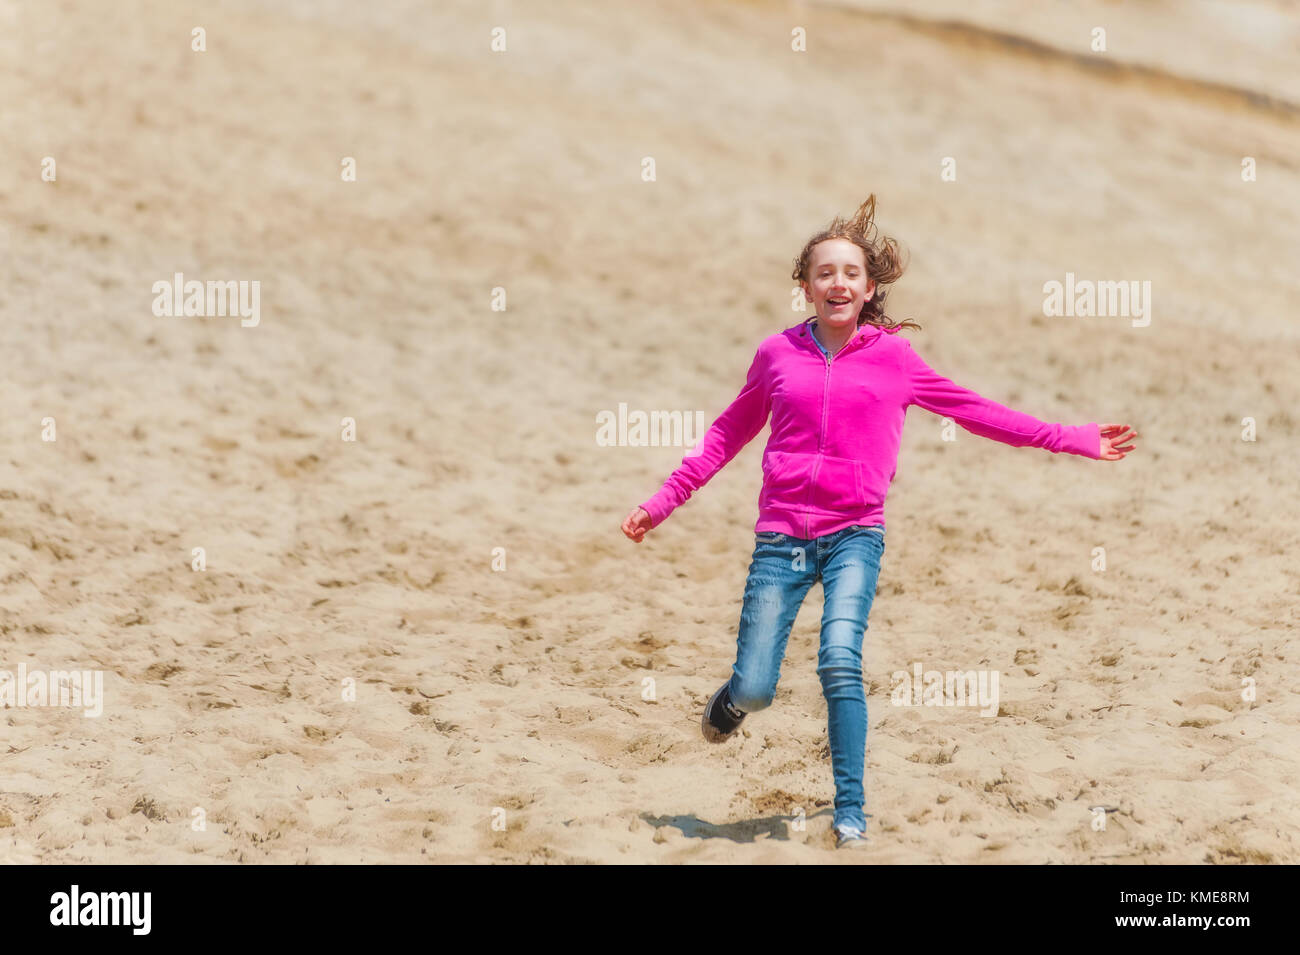 A young girl wearing blue jeans and a pink sweatshirt is having fun running down a large sand hill at Pacific City - Stock Image